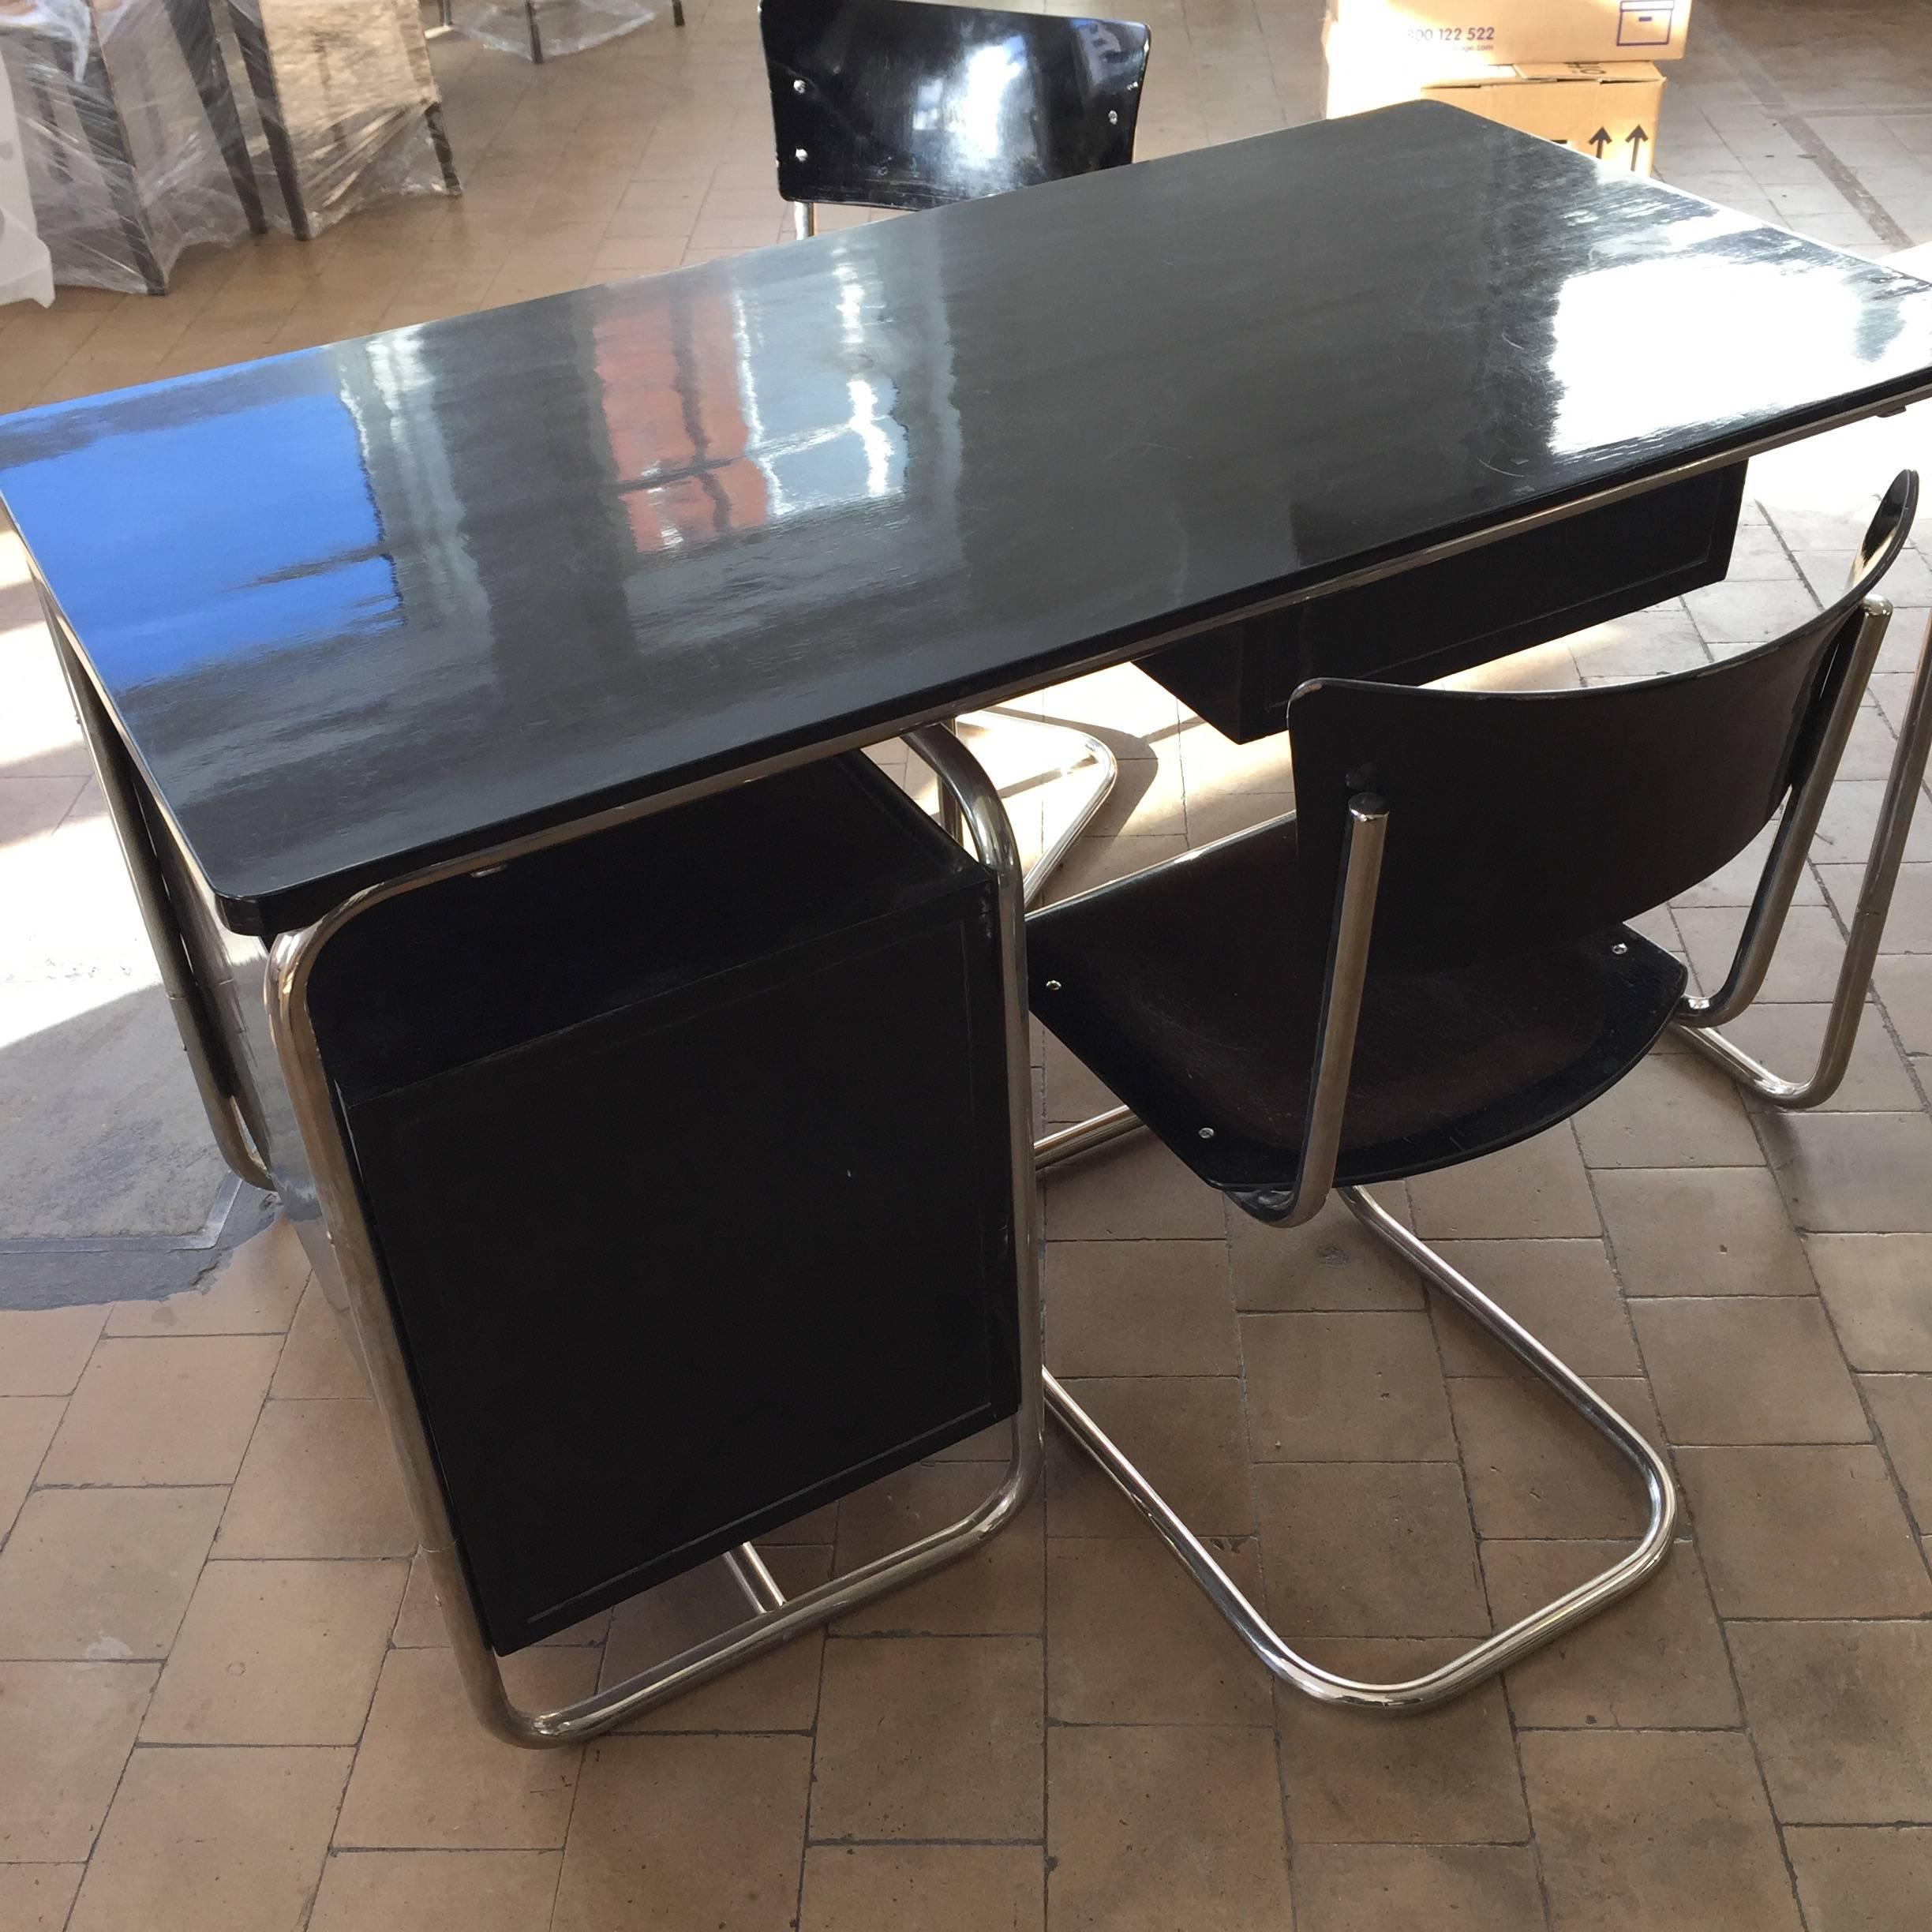 Bauhaus Paravent Marcel Breuer Bauhaus Writing Desk With Two Chairs Black Lacquered